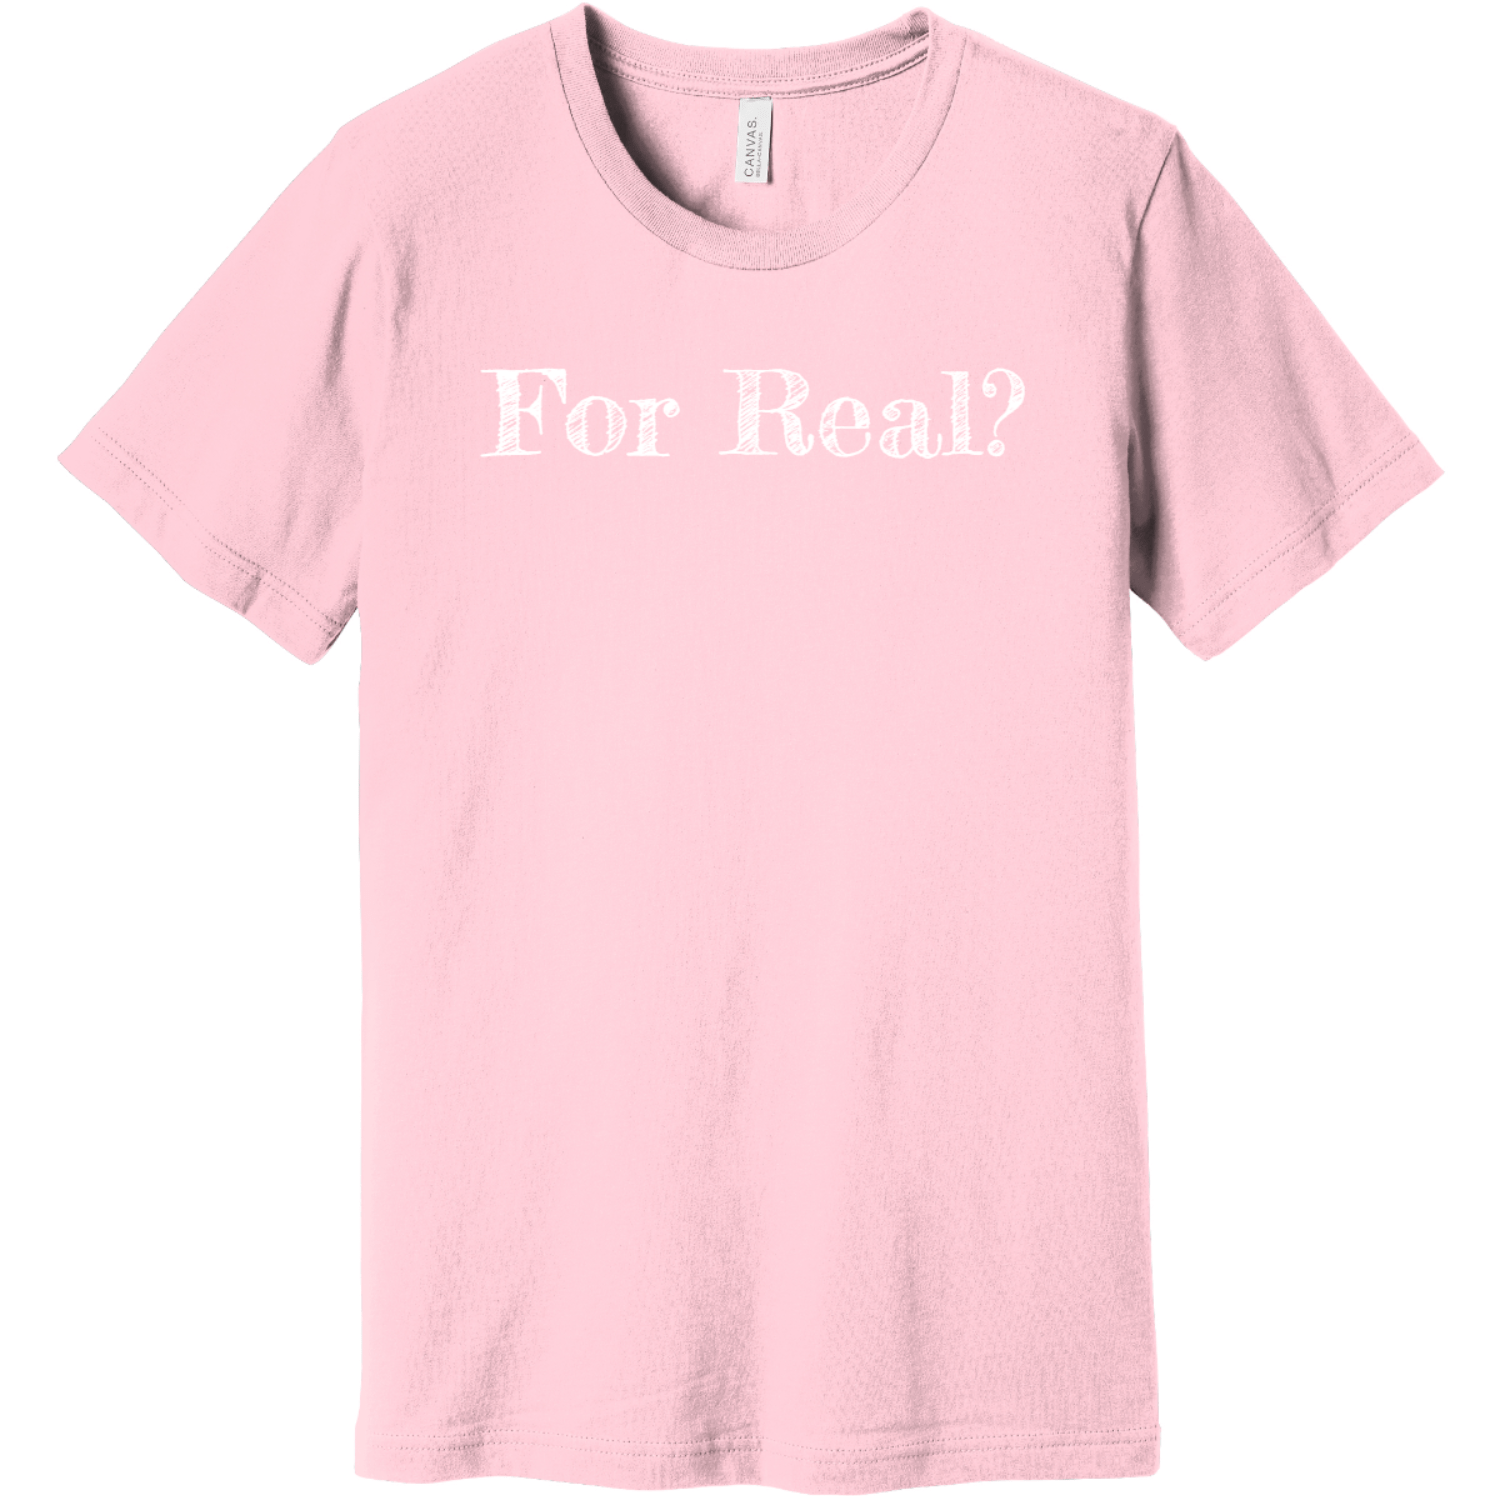 For Real T Shirt Pink Bella Canvas Unisex Tee BC3001